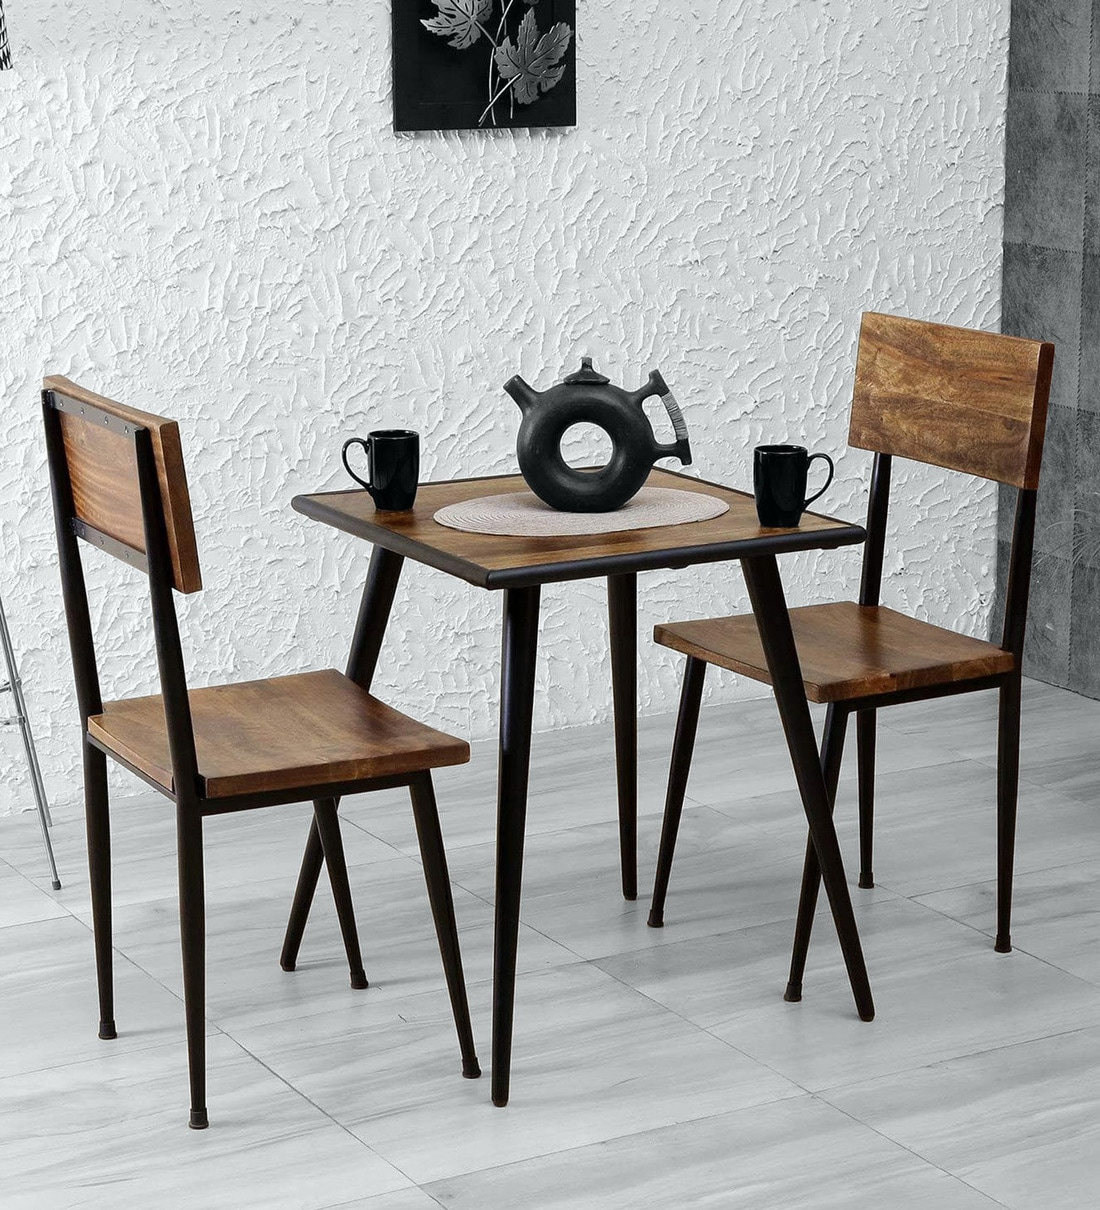 Buy Cafelectic Table Set With 2 Chairs In Provincial Teak Black Frame Bohemiana By Pepperfry Online Industrial 2 Seater Dining Sets Dining Furniture Pepperfry Product